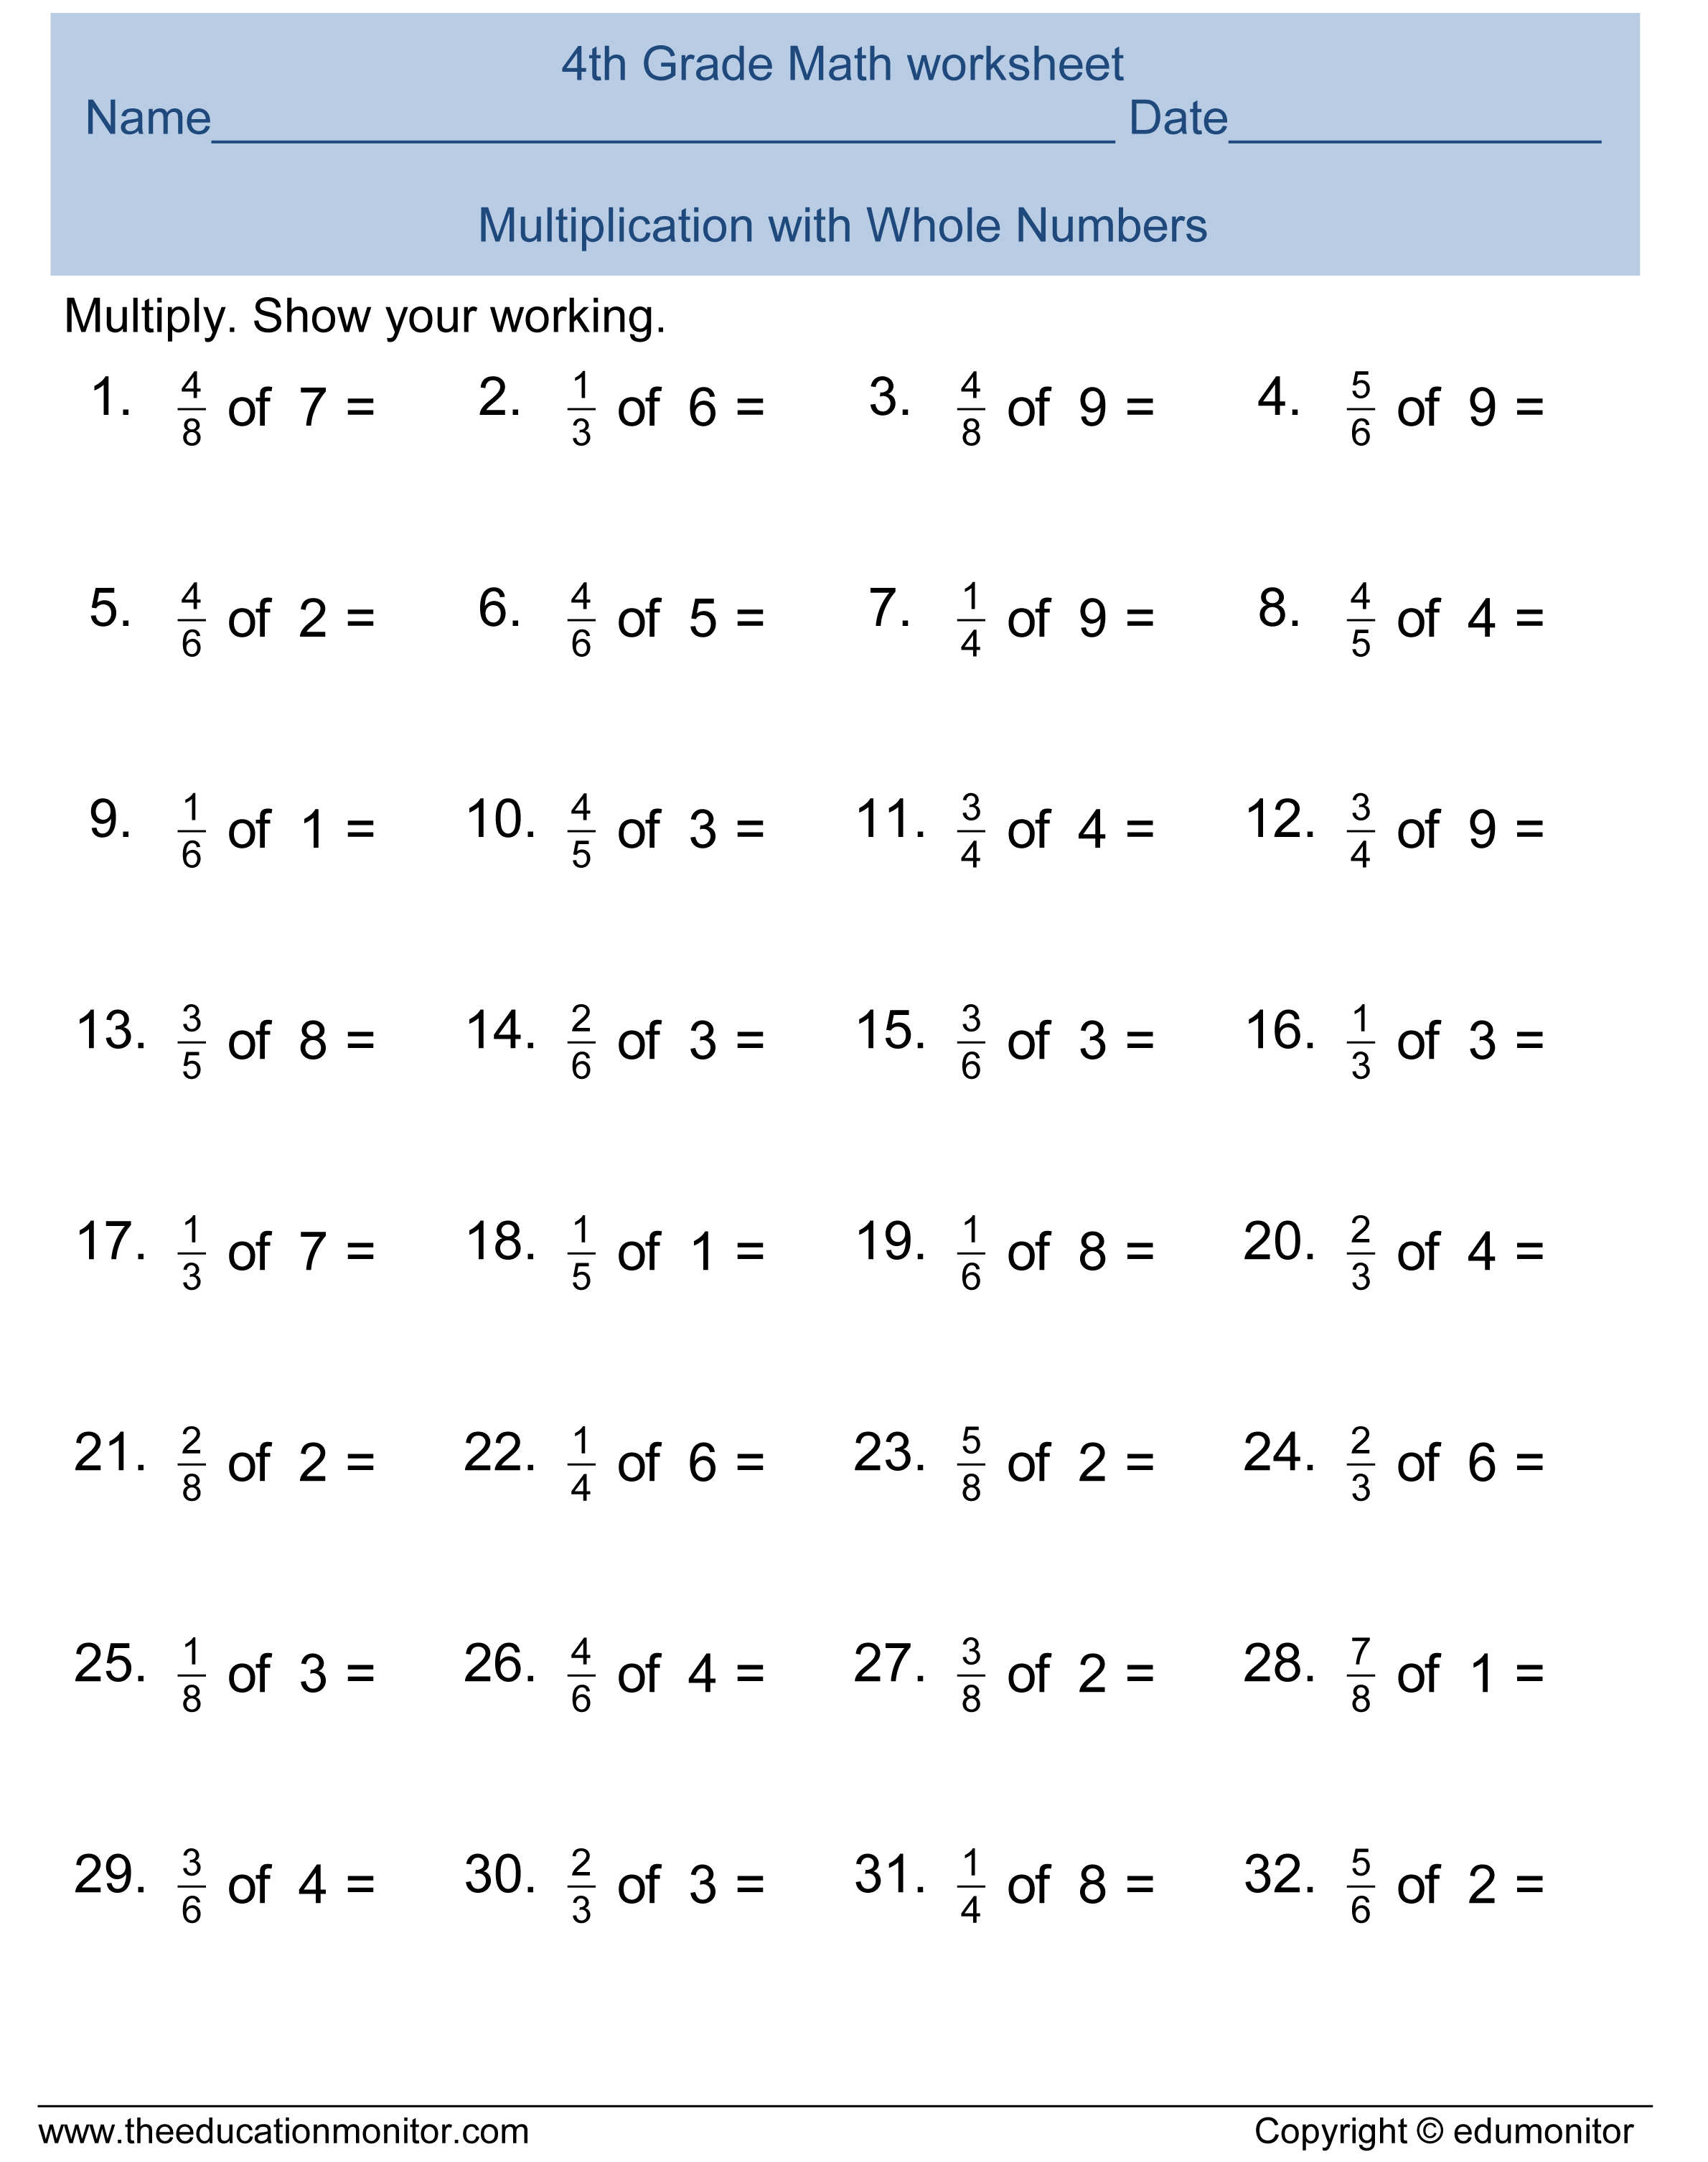 Adding And Subtracting Fractions Worksheets Free Scalien – Add and Subtract Fractions Worksheets